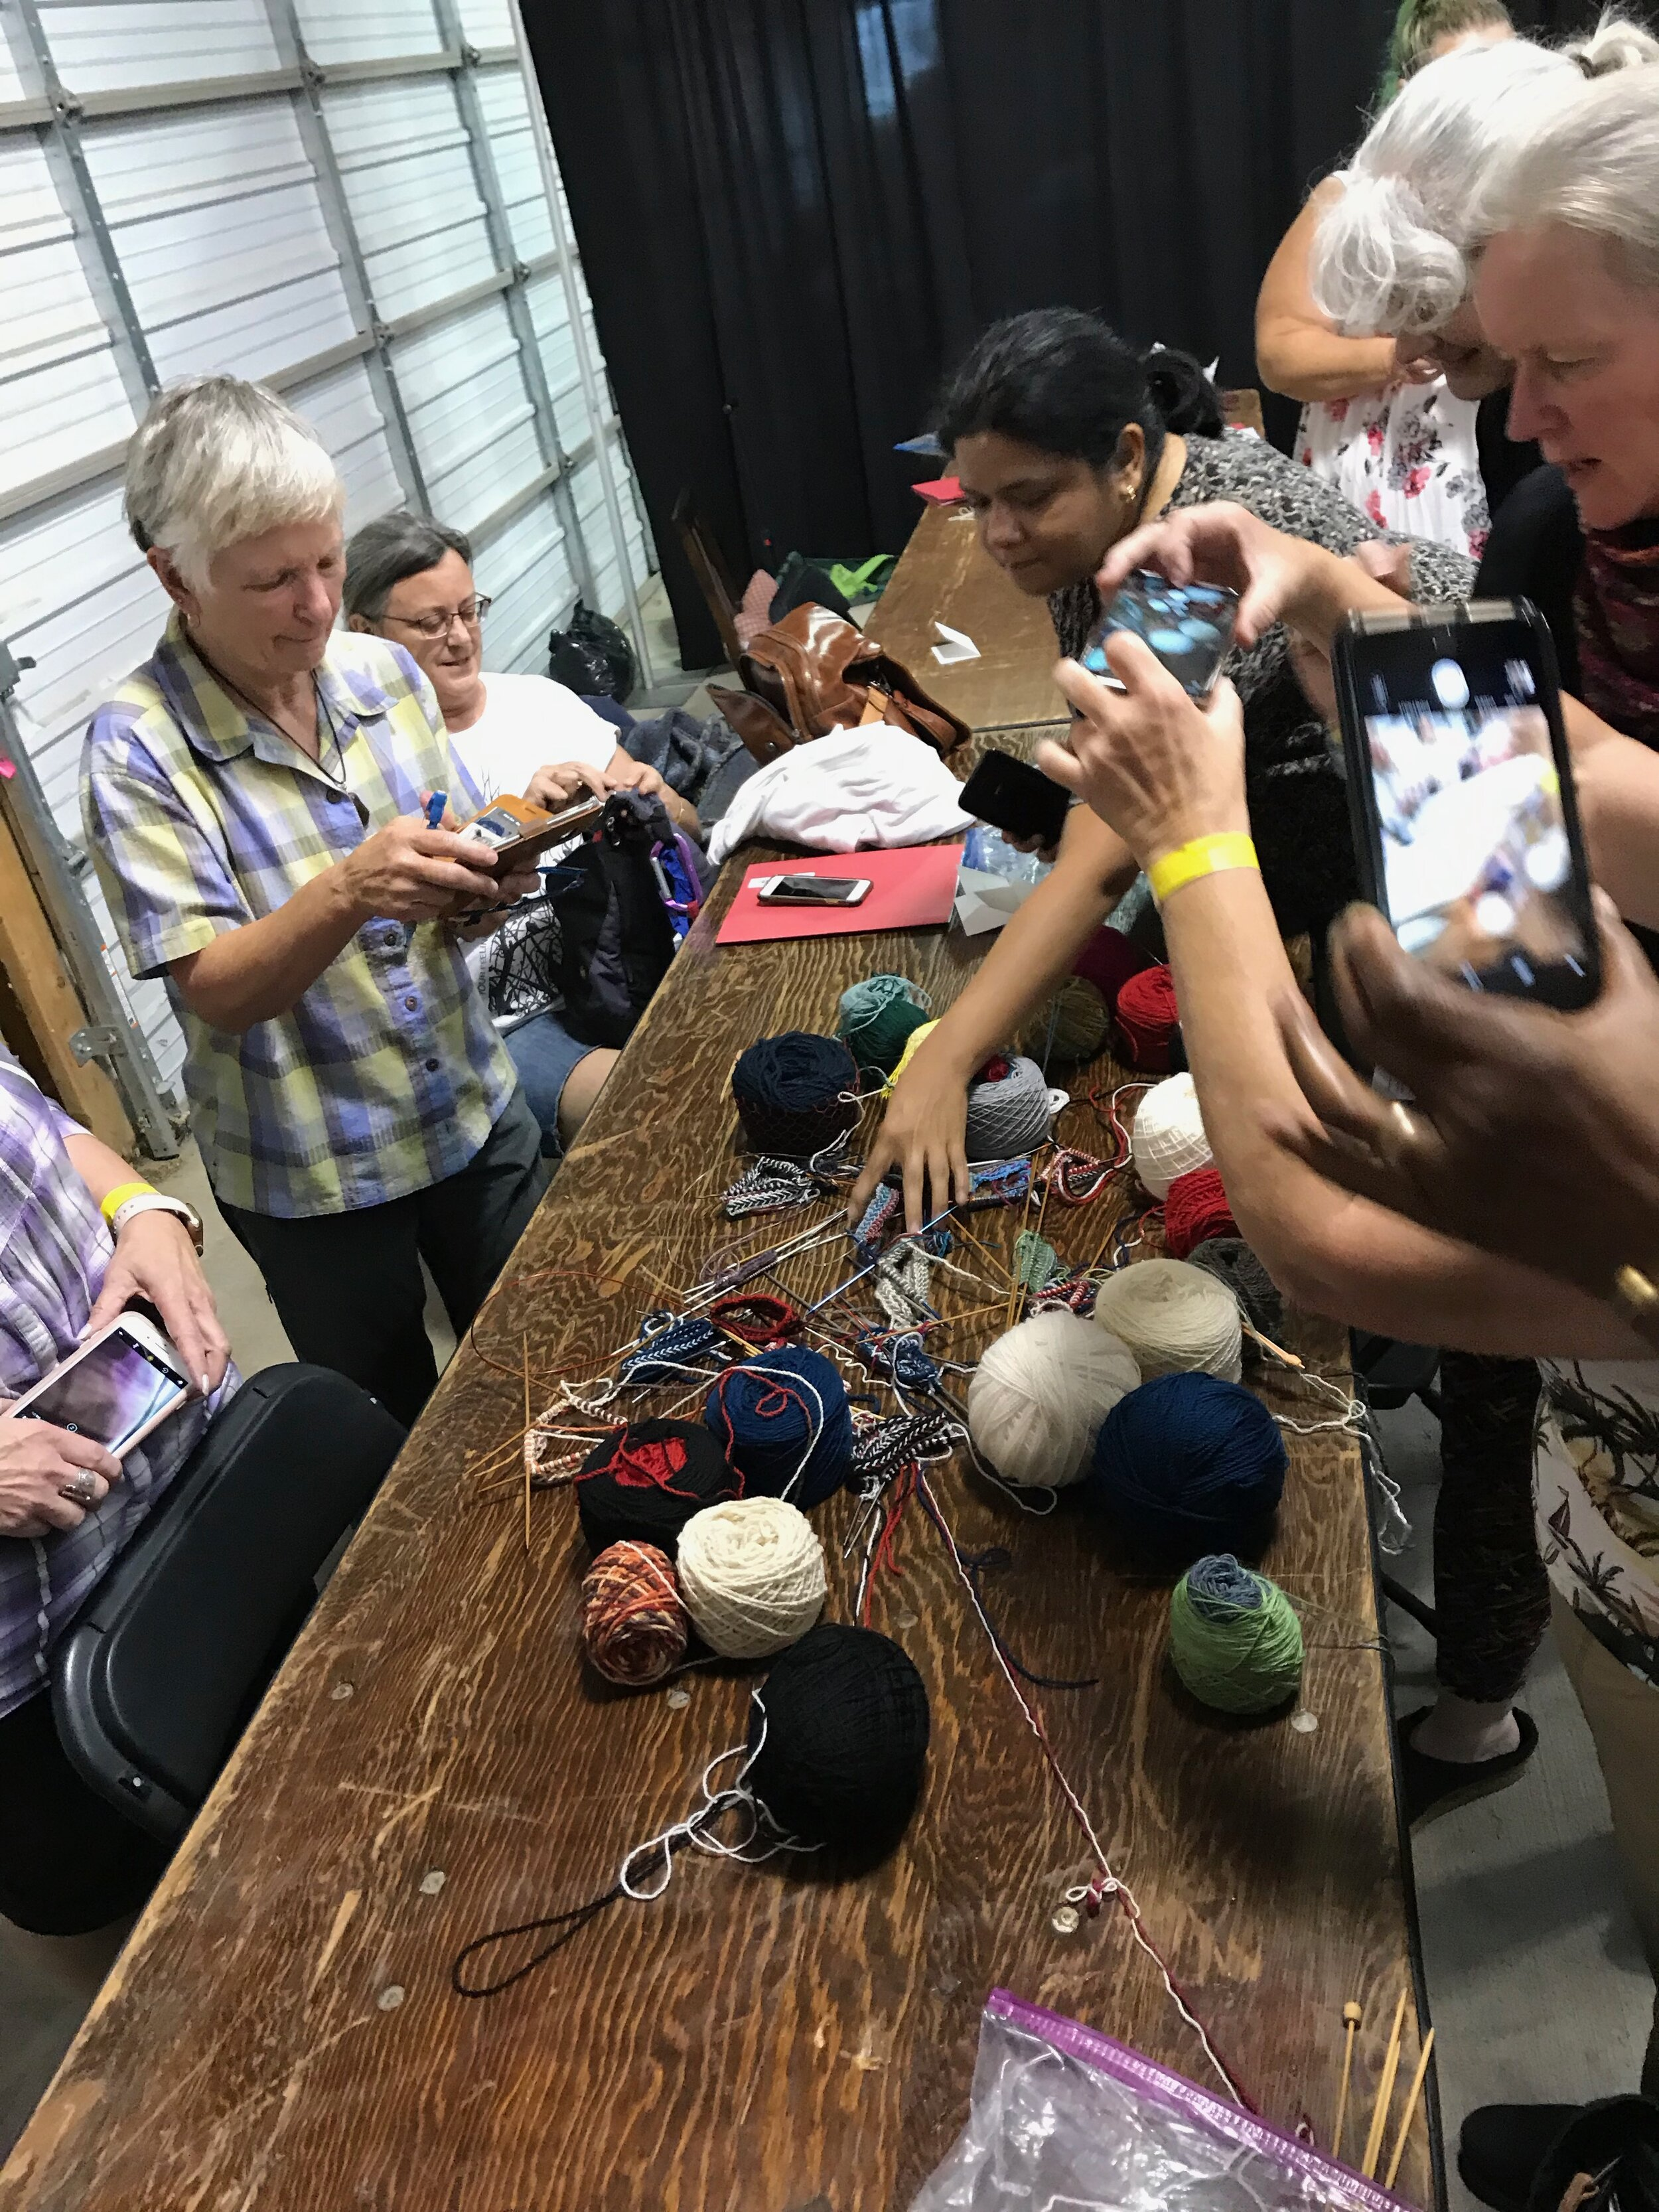 Twined knitting samplers with the students